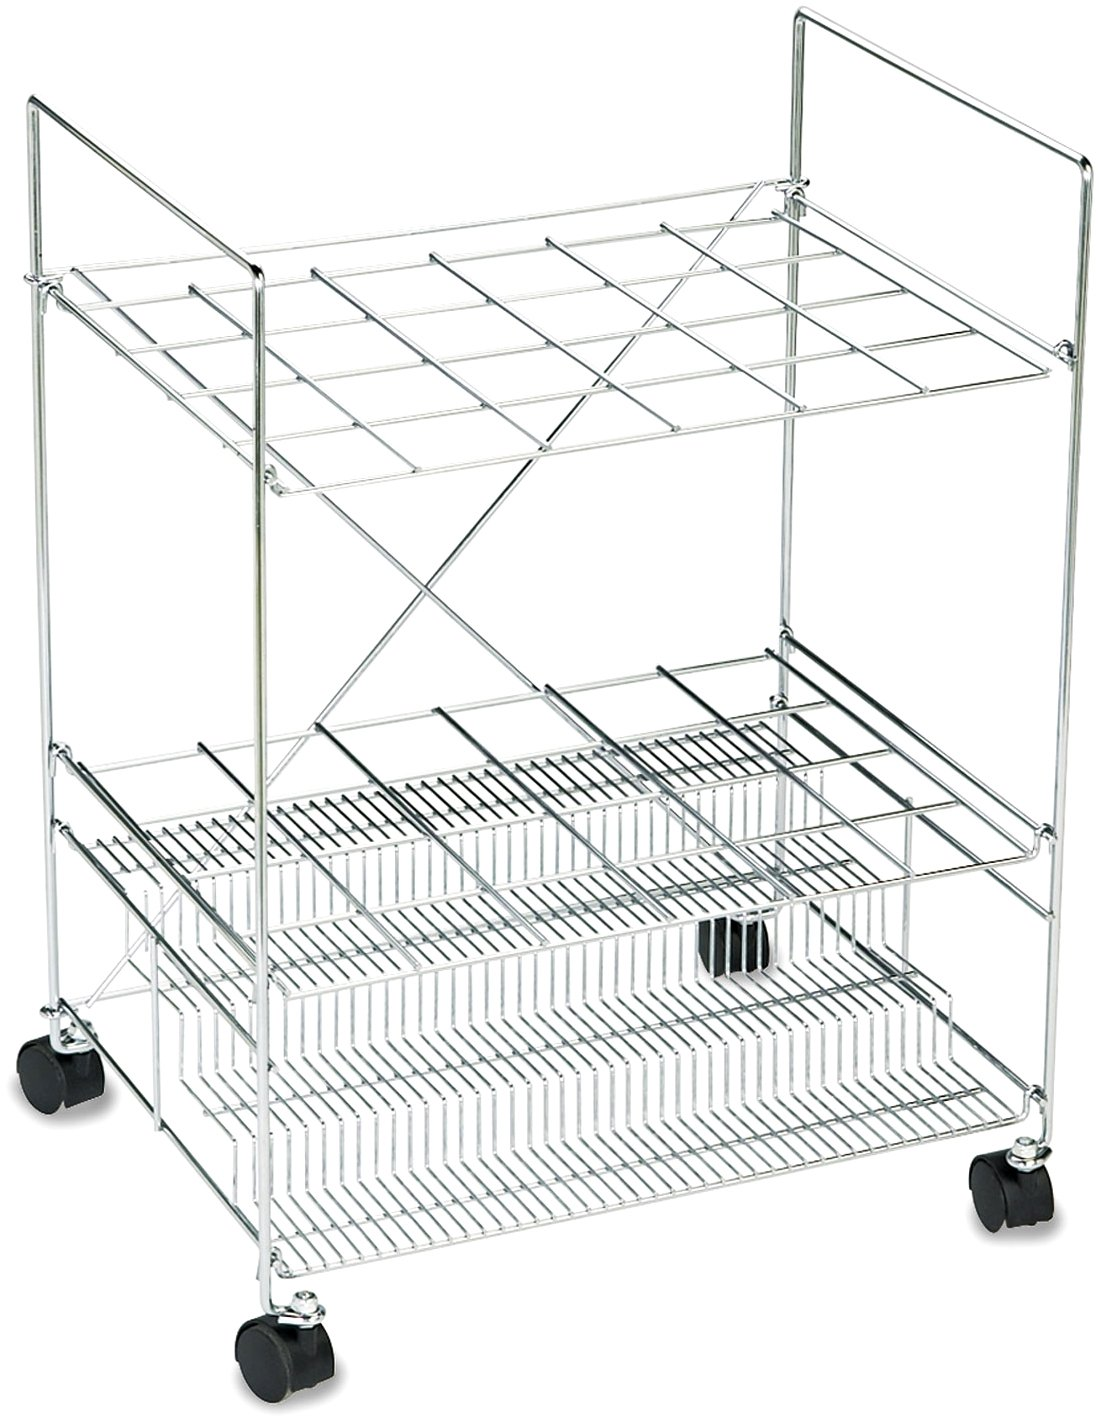 Safco Products Chrome Wire Roll File, 24 Compartment, Chrome by Safco